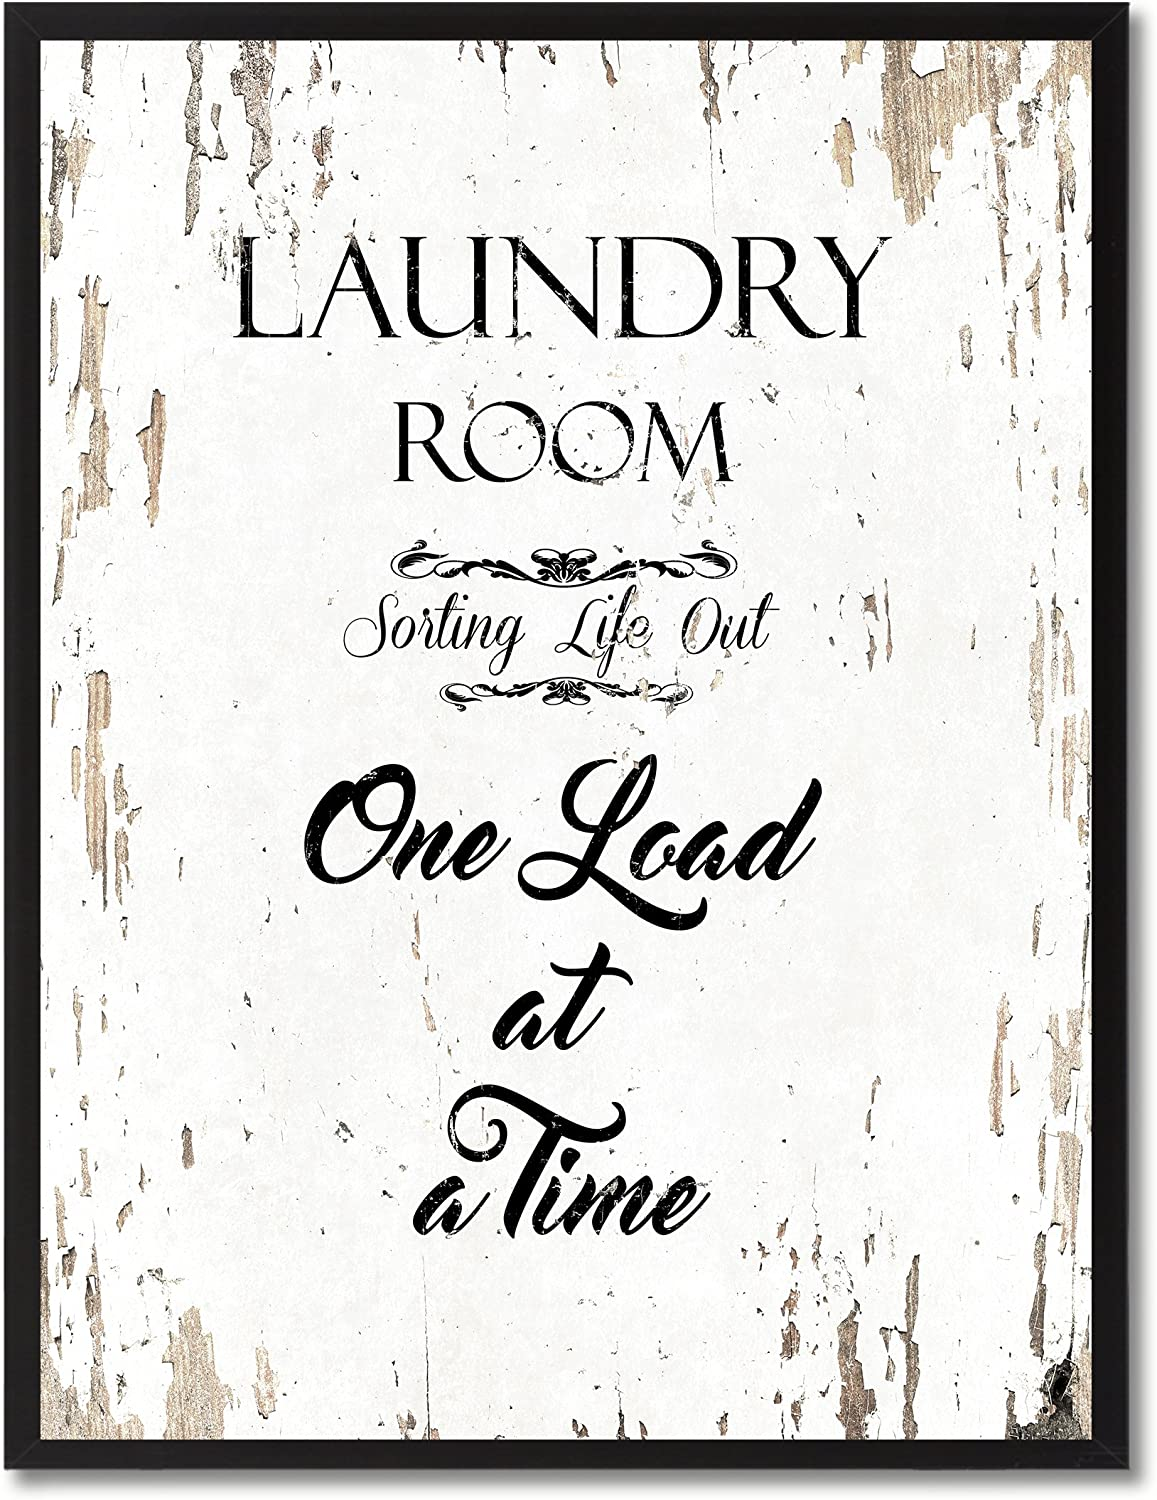 """SpotColorArt Laundry Room Sorting Life Out One Load at A Time Framed Canvas Art, 7"""" x 9"""", White"""